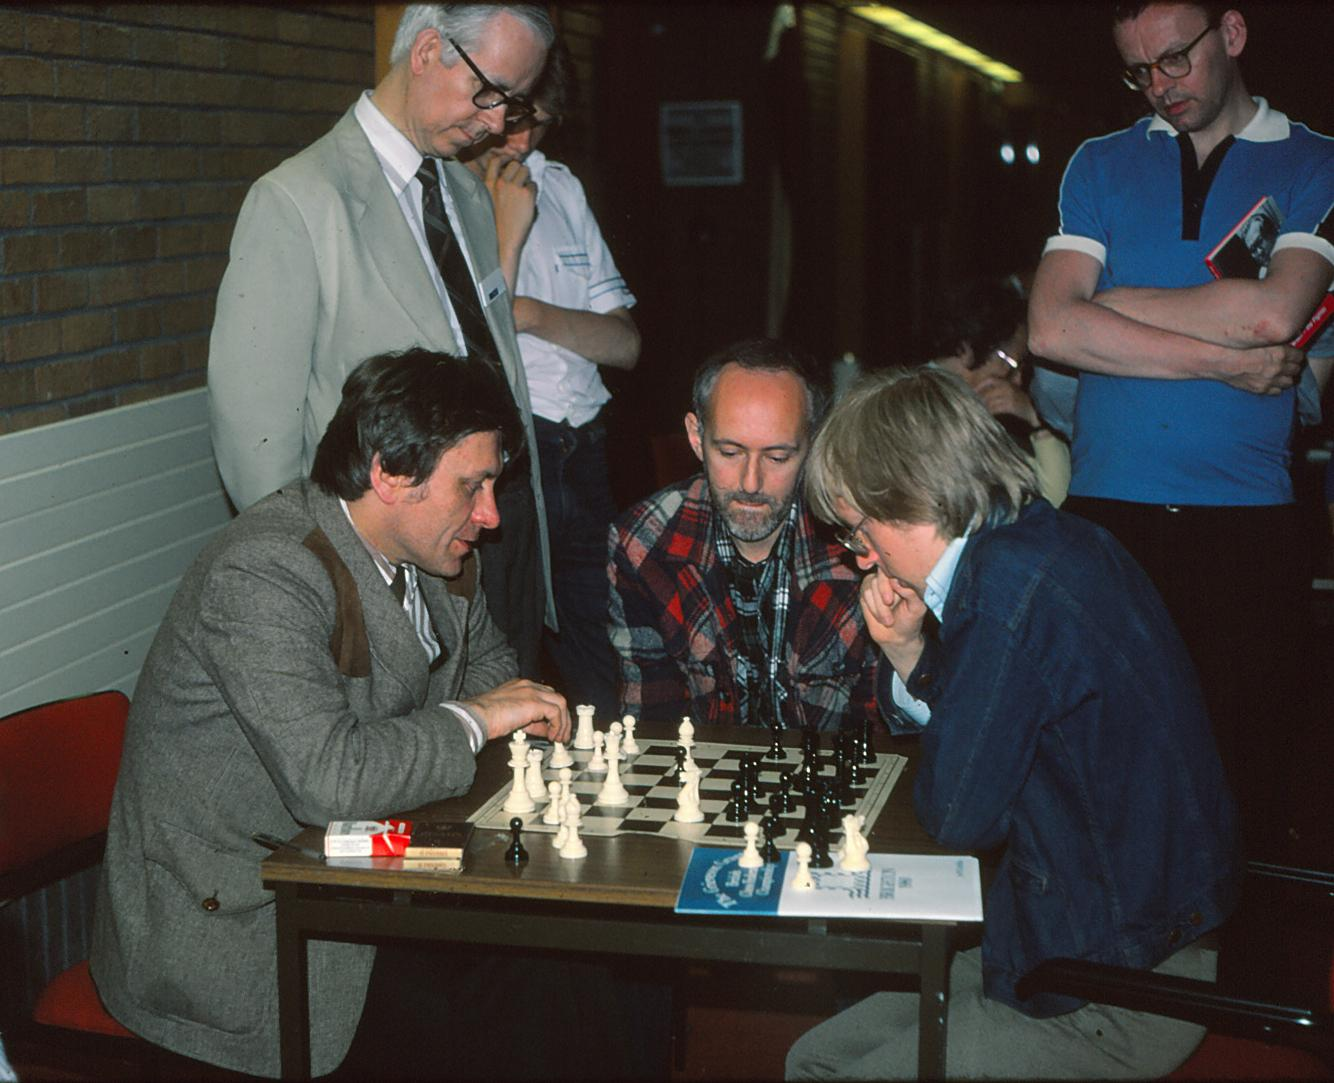 LWB observes analysis between David Rumens and Murray Chandler from Brighton 1980. Courtesy of John Upham Photography